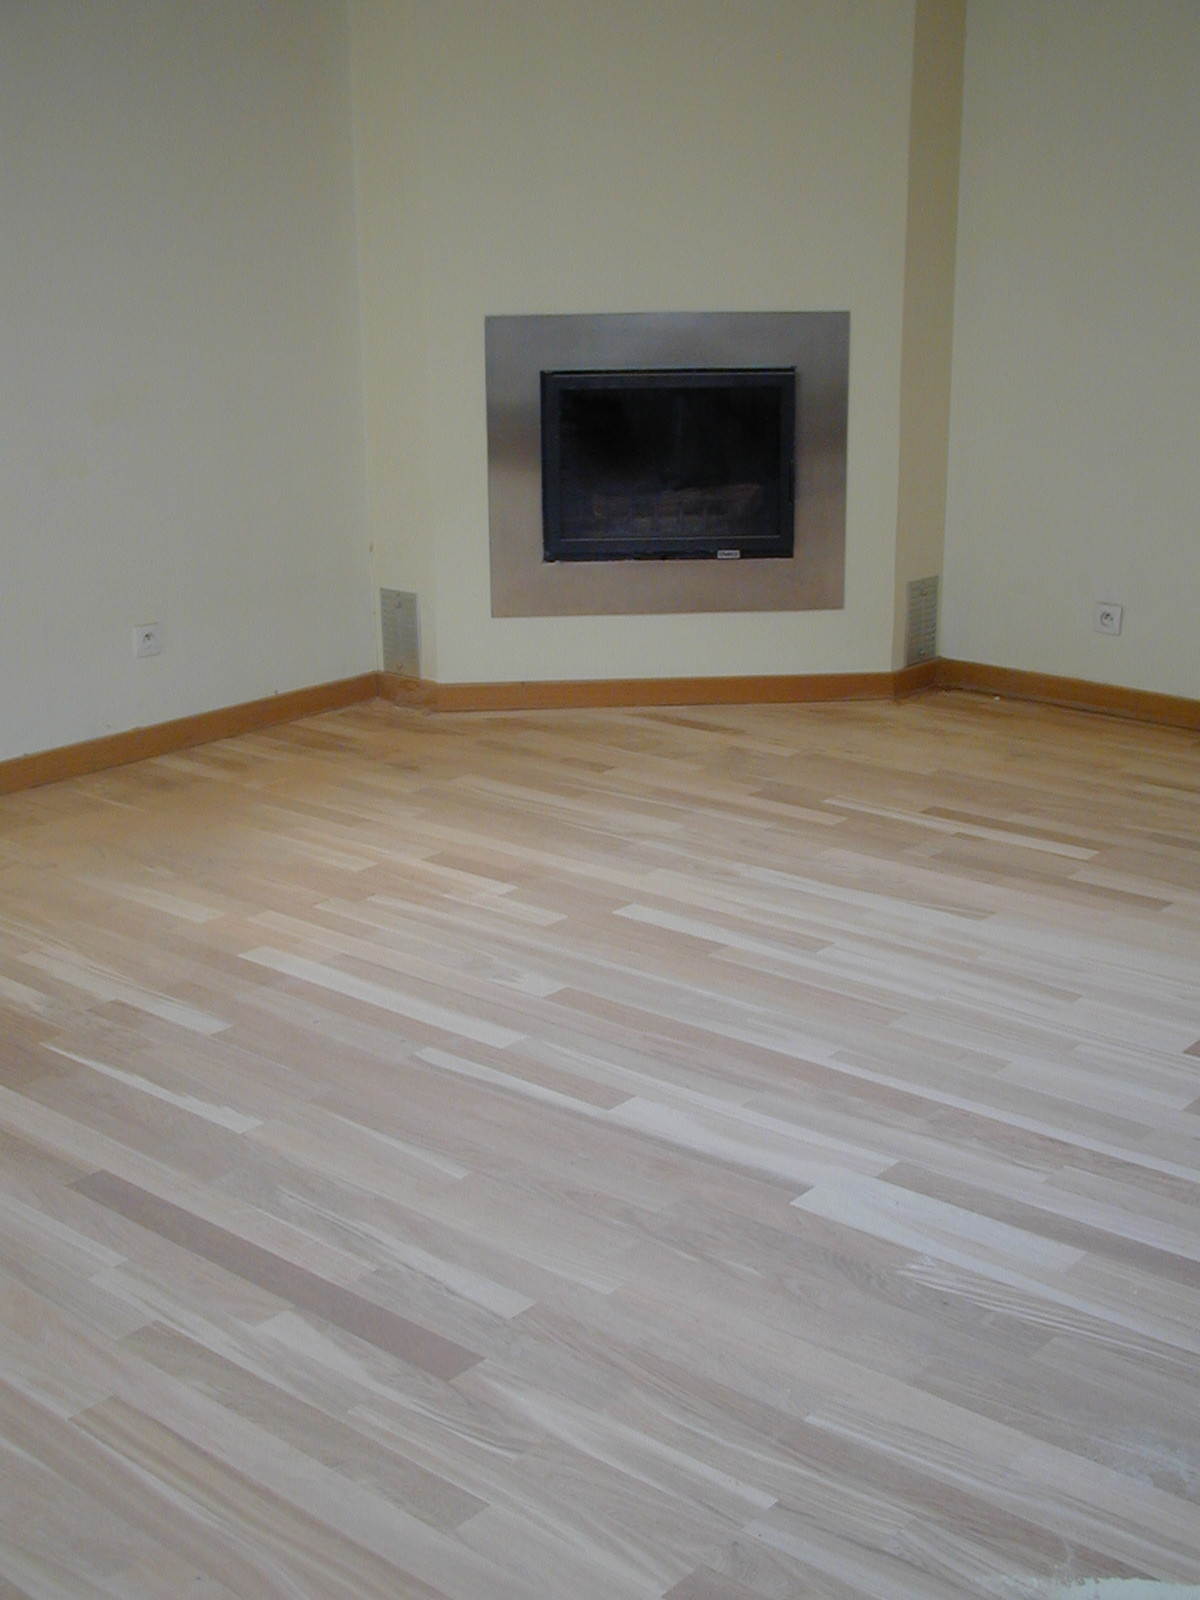 Decaper un parquet en chene cout d une renovation for Peindre parquet vitrifie